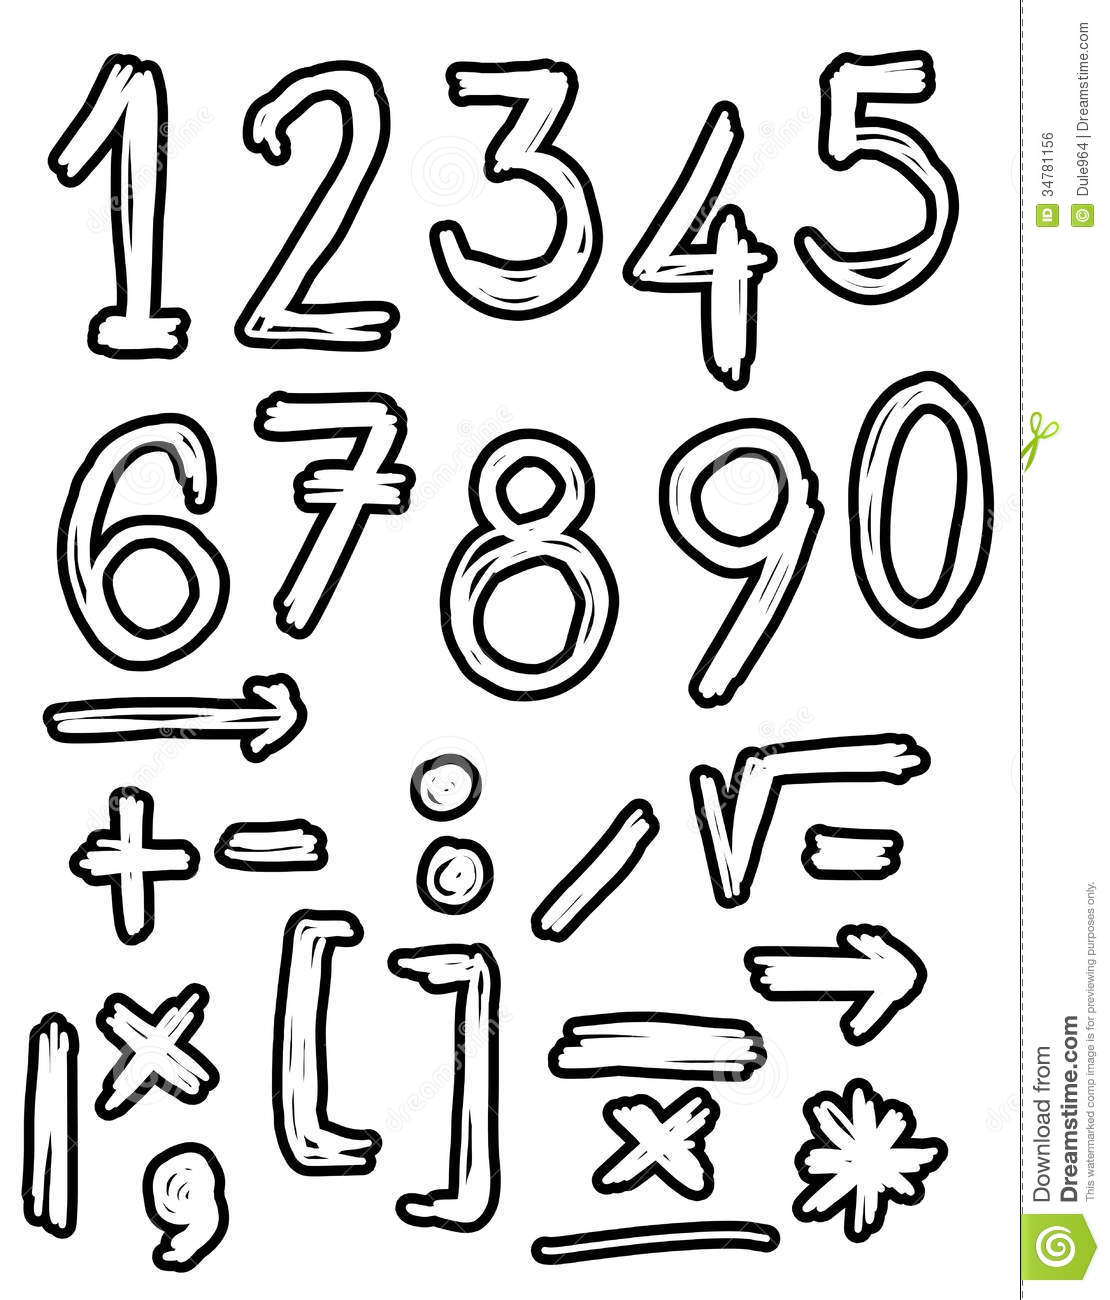 Line Drawing Numbers : Hand drawn numbers doodles stock illustration